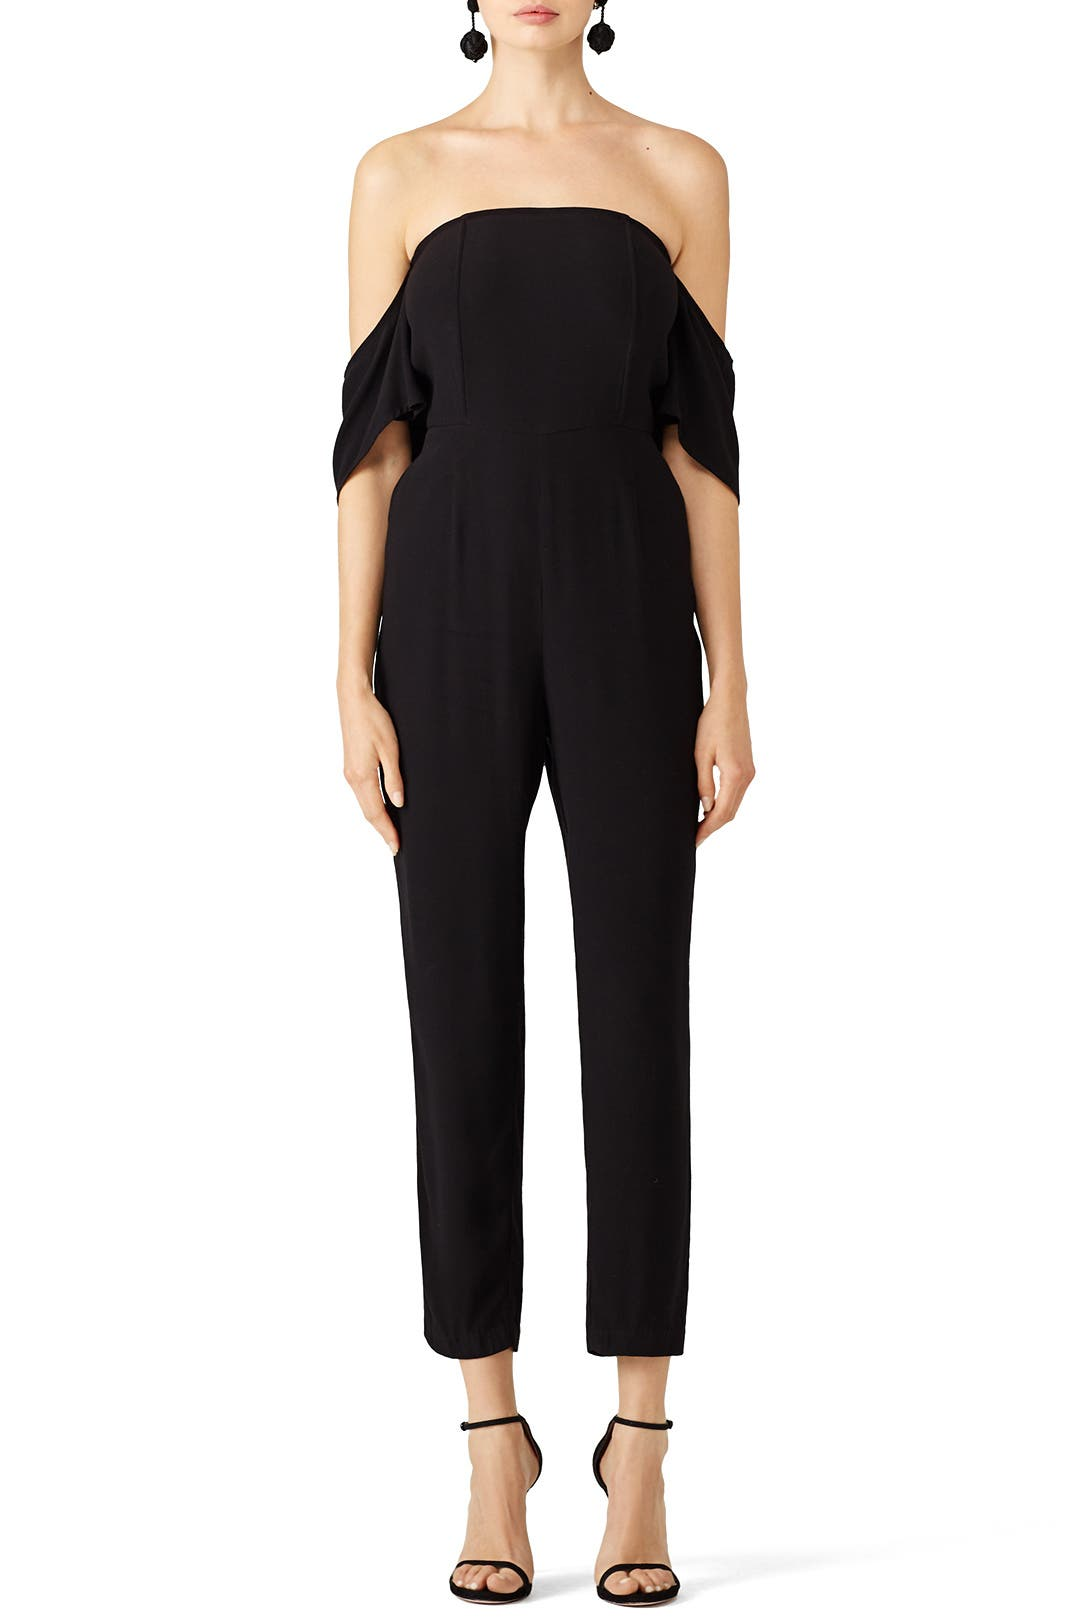 b6b10d48efaa cupcakes and cashmere. Read Reviews. Skinny Leg Jumpsuit